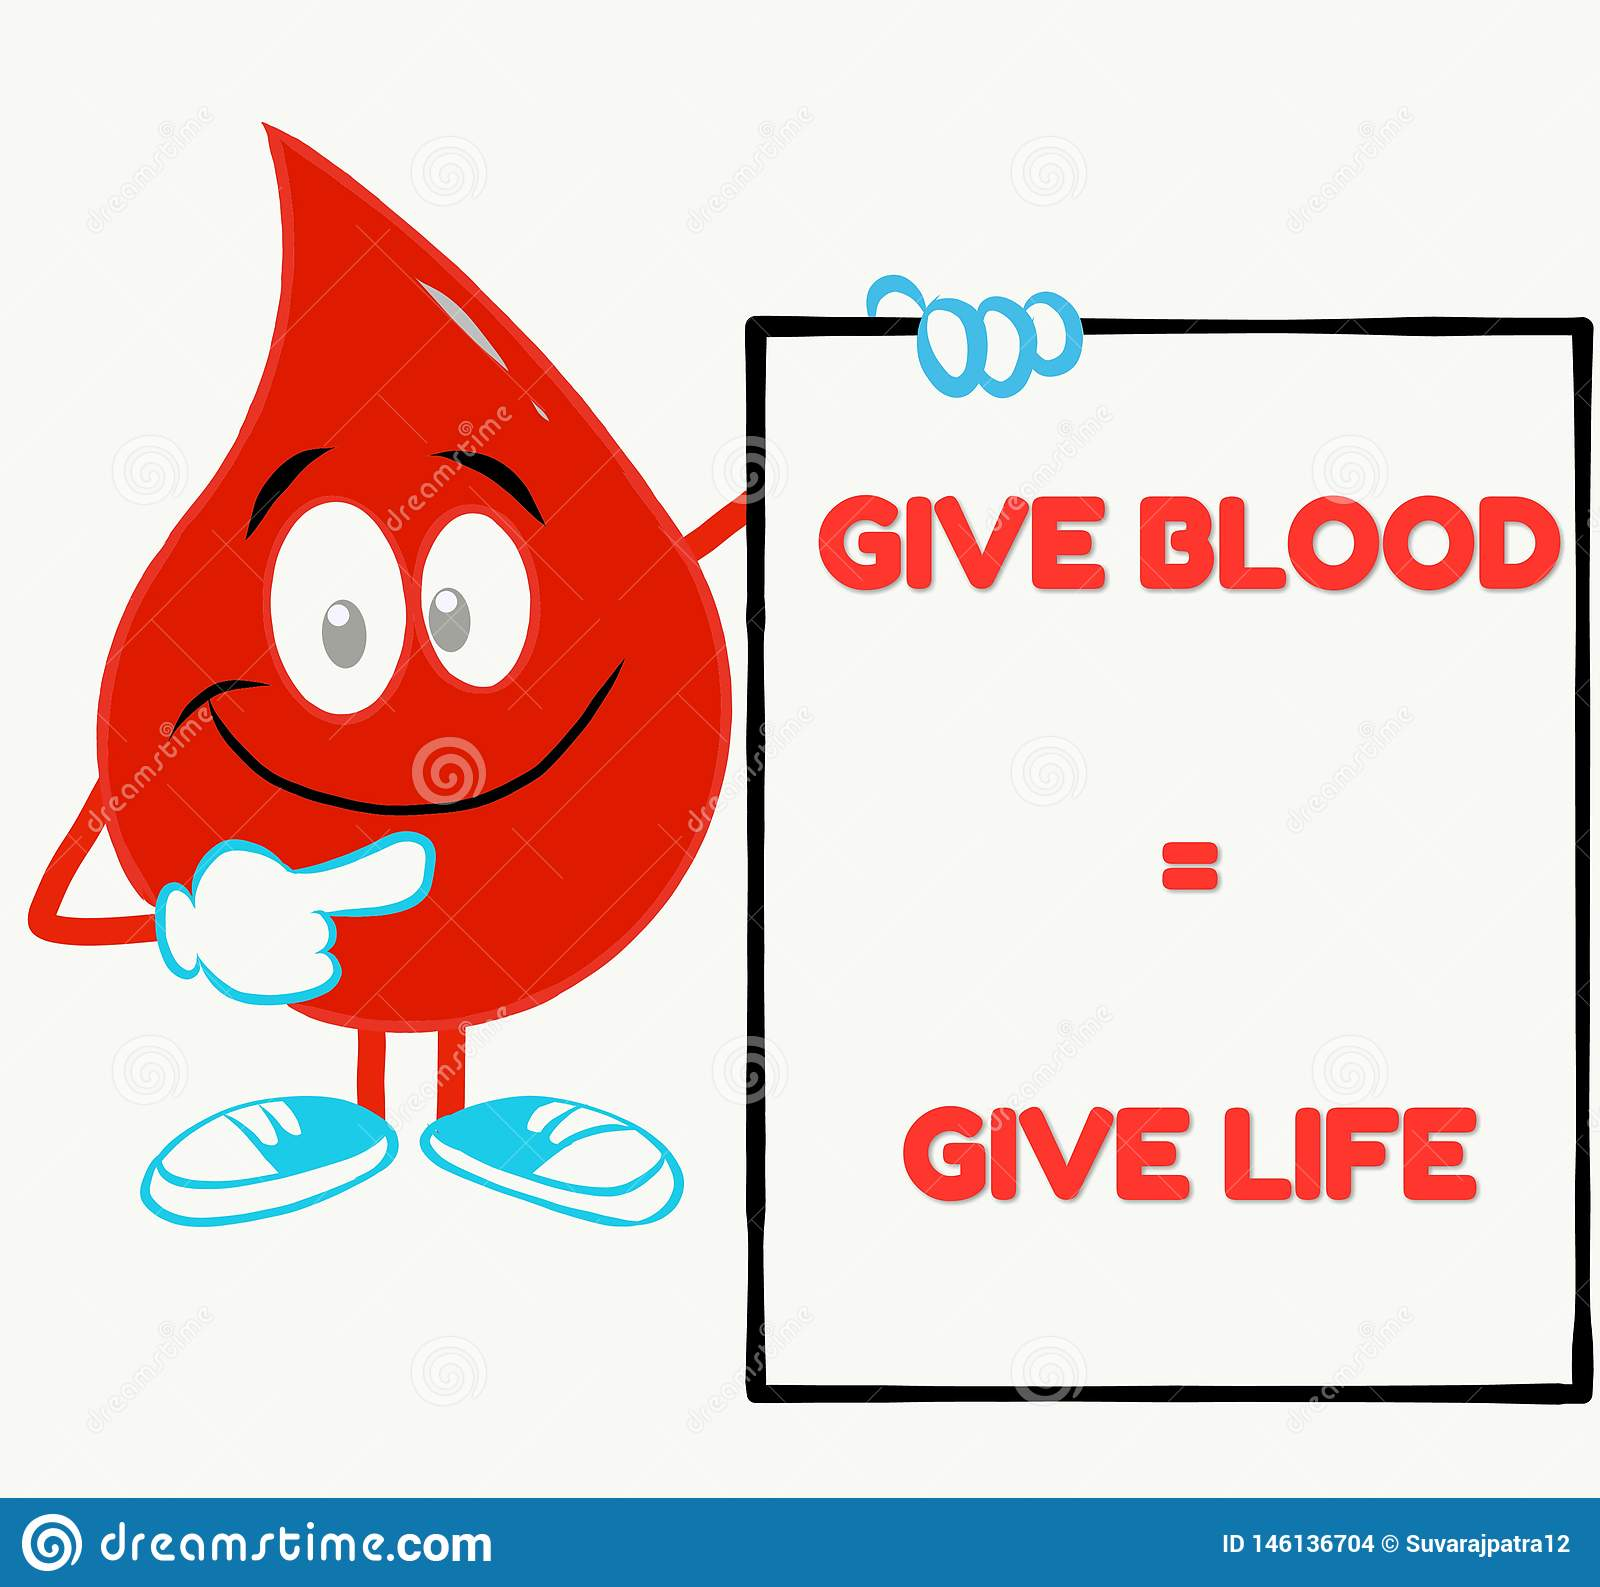 hight resolution of banner health care volunteer transfuse clipart campaign lifesaver medical charity blood donation template help quote graphic poster abstract transfusion